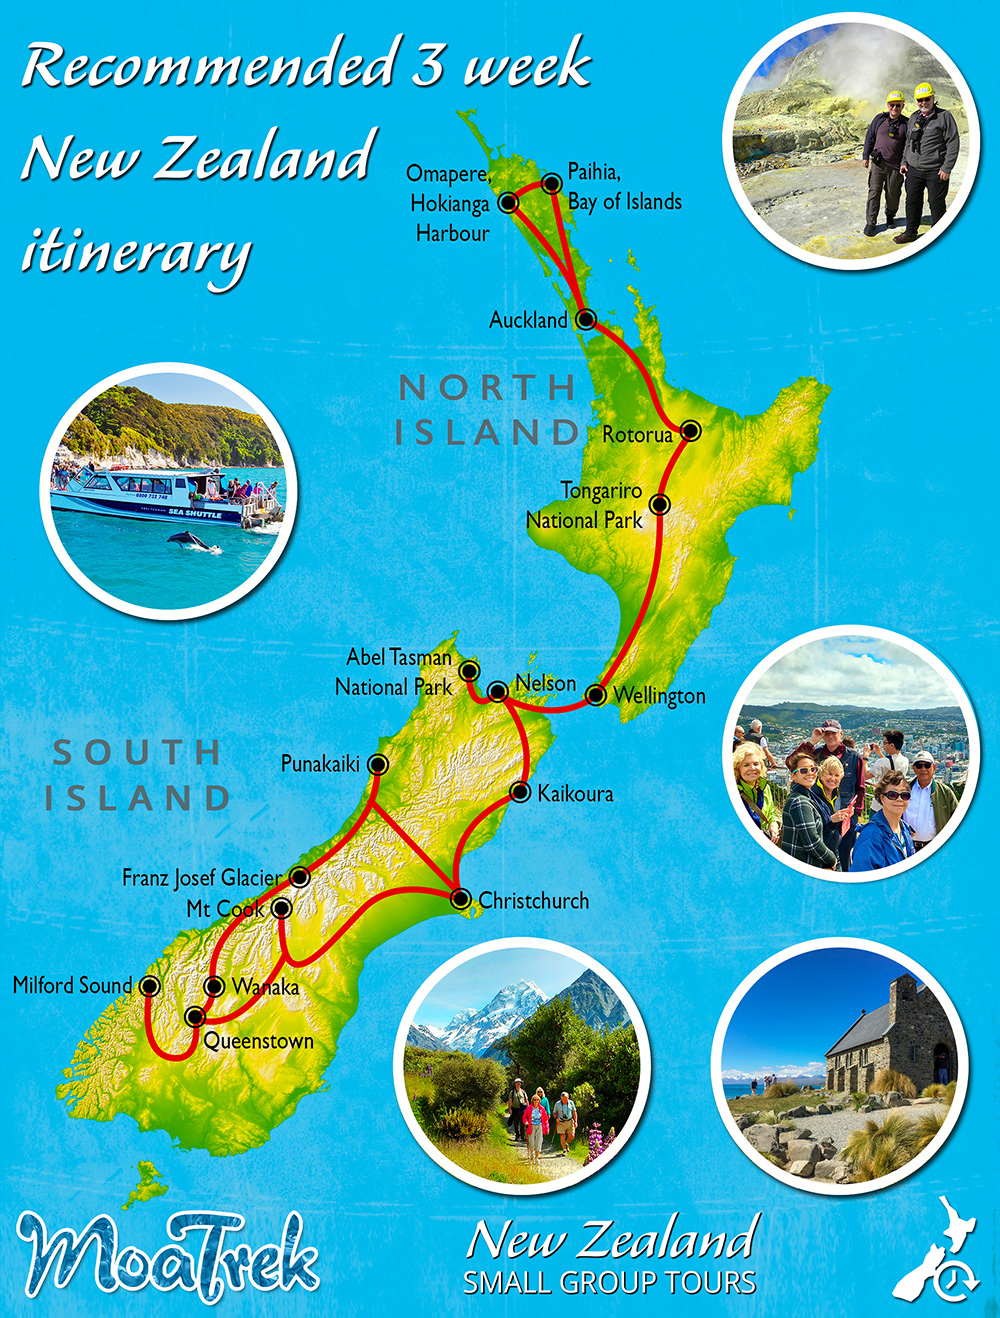 New Zealand Sightseeing Map.How Long Should I Visit New Zealand For Moatrek Tours